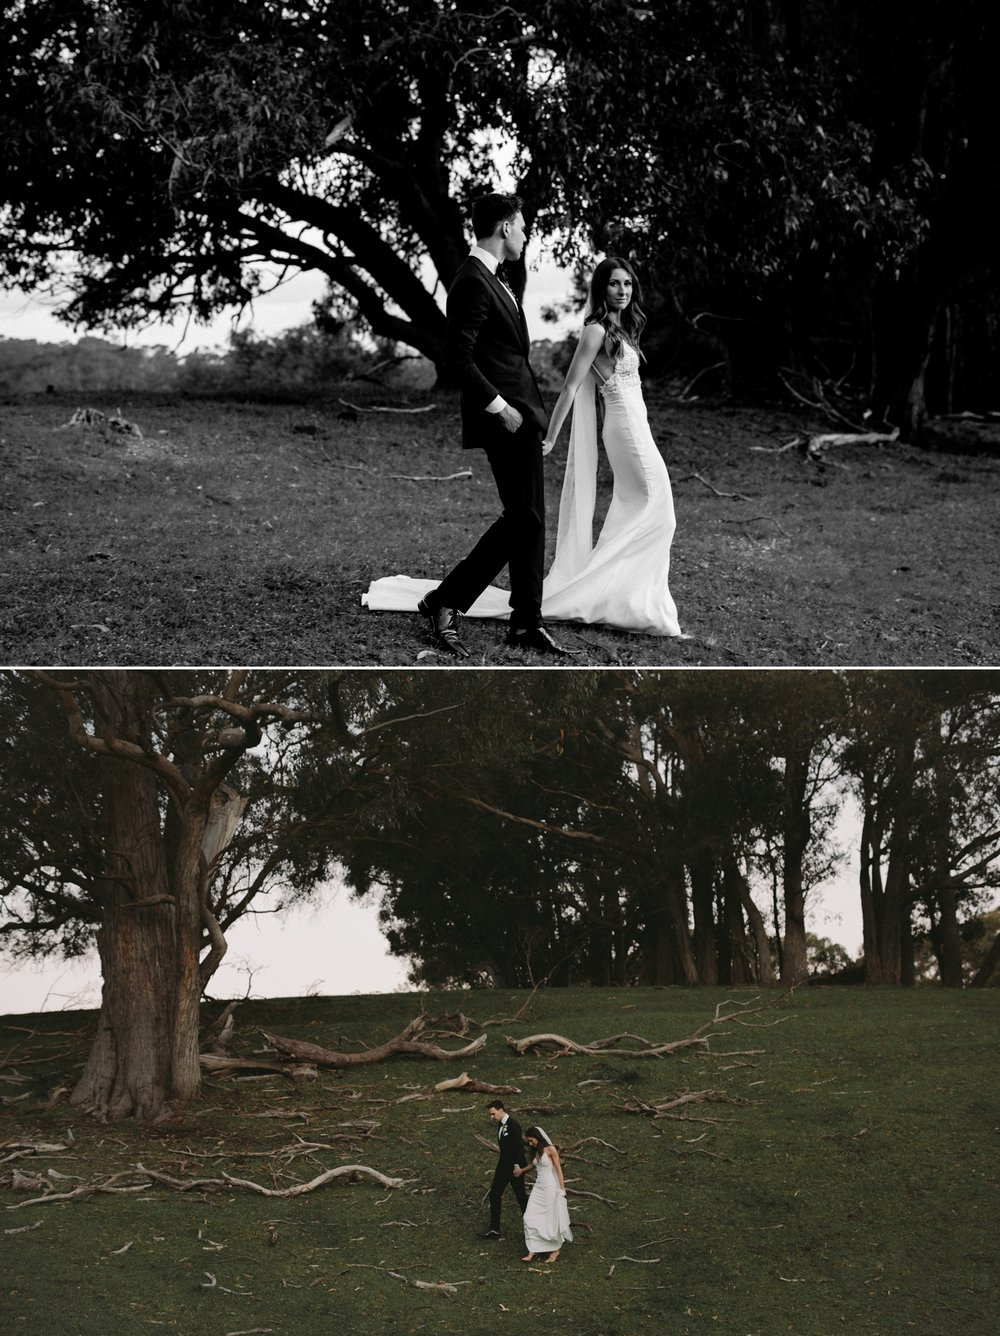 Katie and Ben - Natural Wedding Photography in Adelaide - Beautiful, Candid Wedding Photographer - Adelaide Hills Wedding - Katherine Schultz - www.katherineschultzphotography.com_0069.jpg